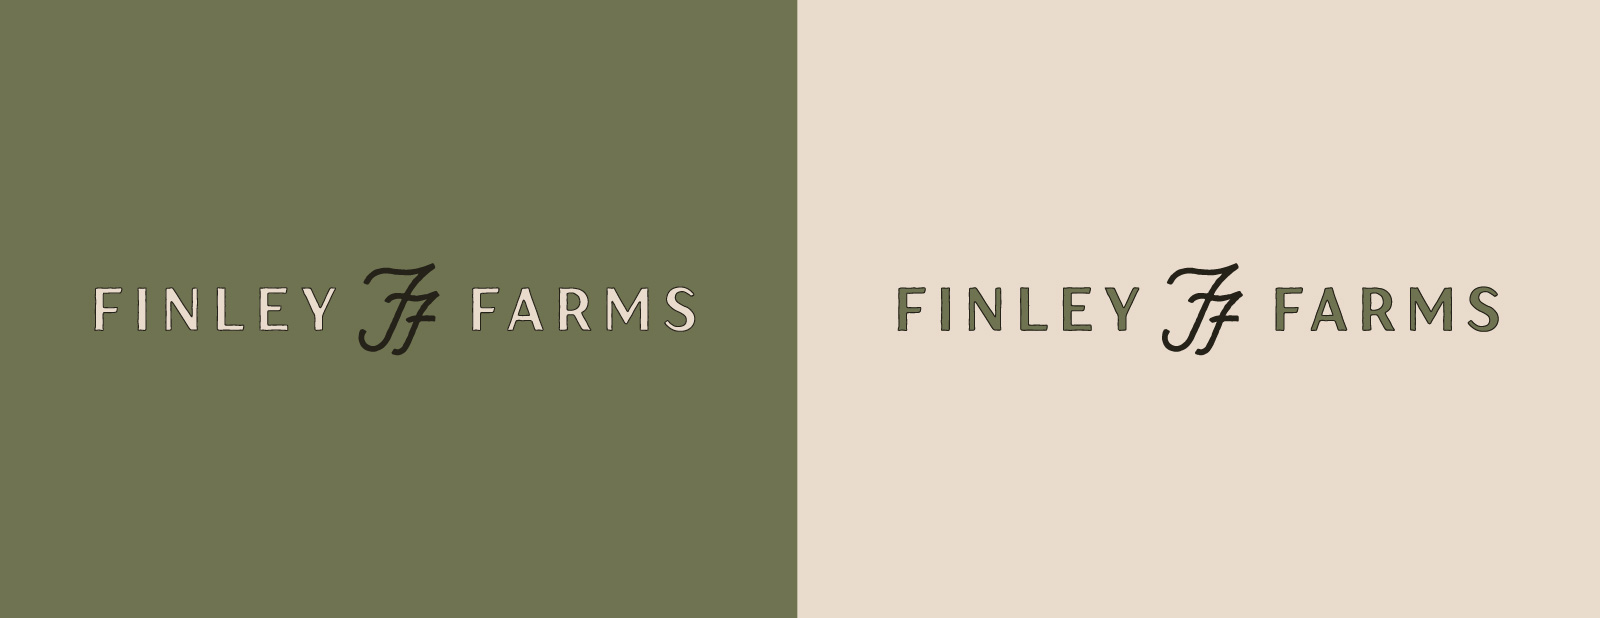 finley-farm-main-logo